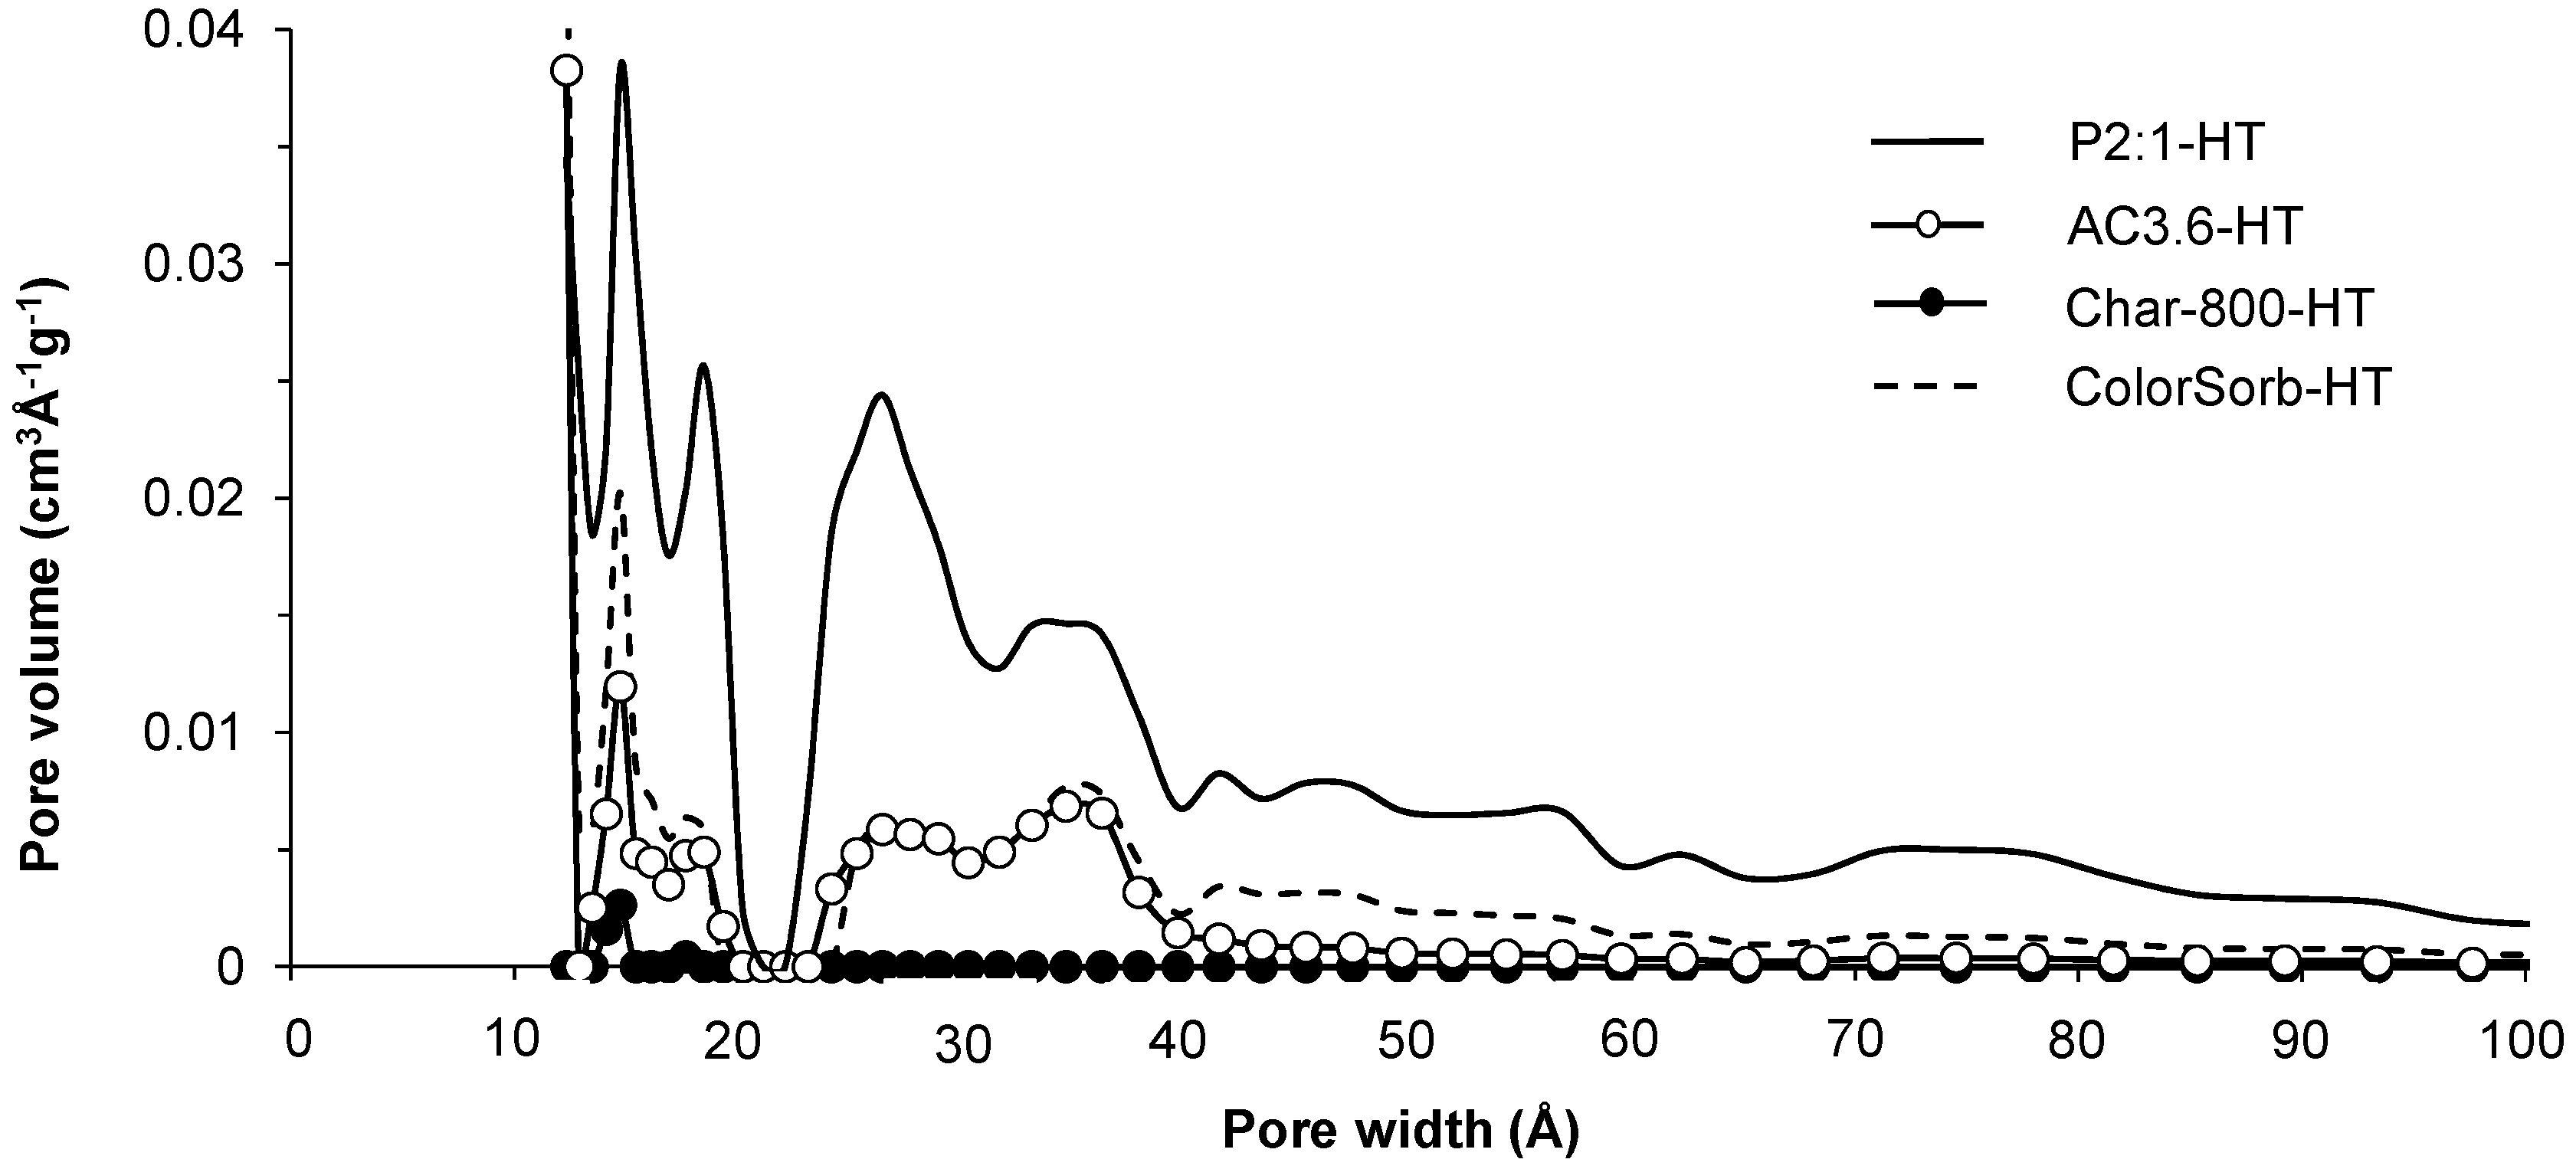 Materials   Free Full-Text   Activation of Aspen Wood with Carbon